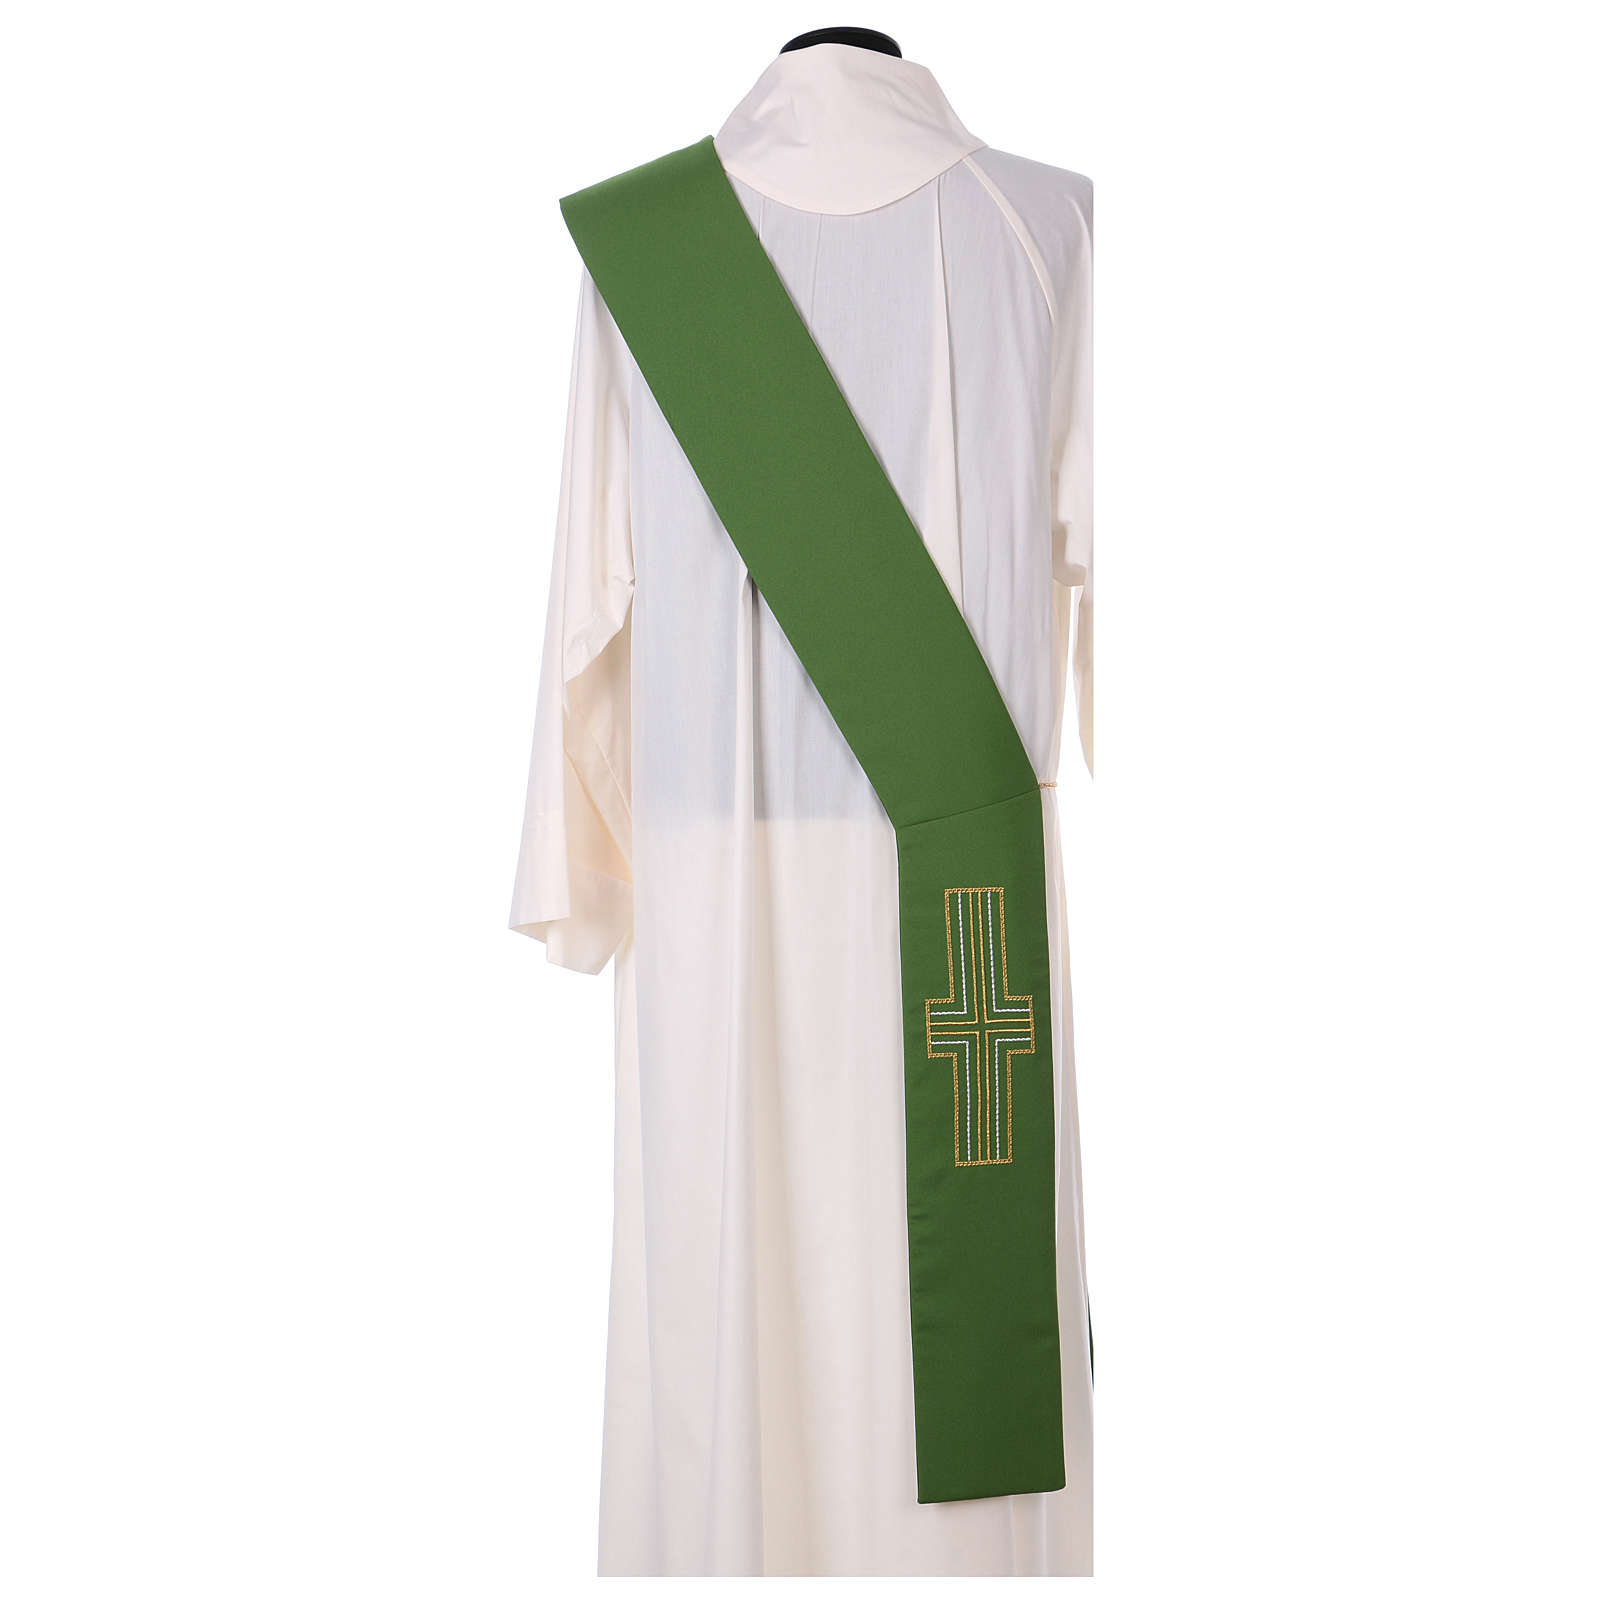 Diaconal stole in polyester with candles embroidery 4